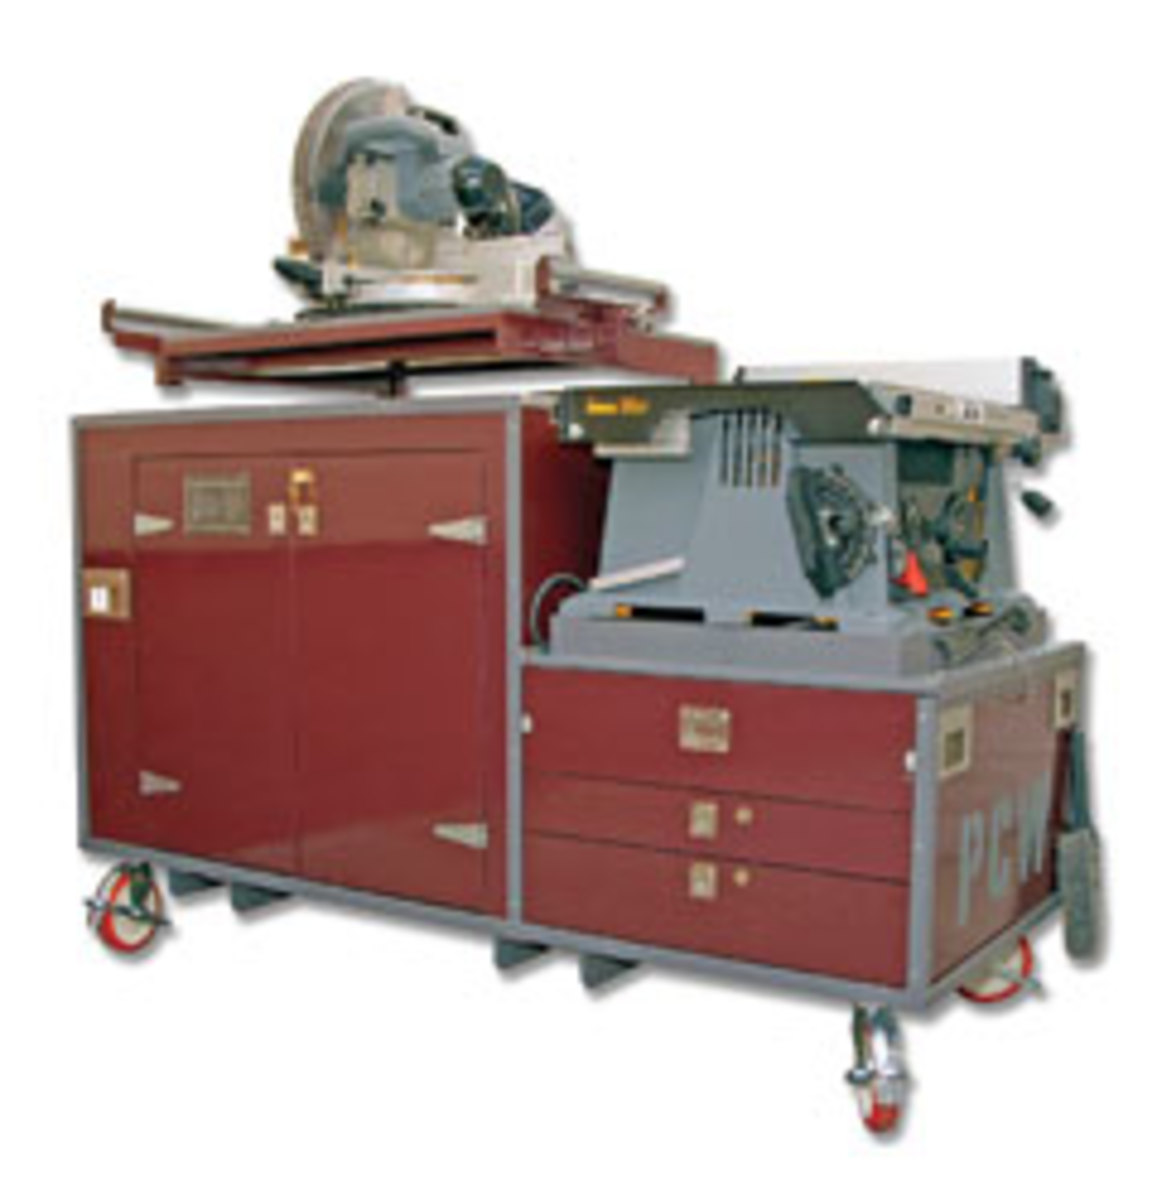 The Portable Carpentry Worskshop supports a table saw, miter saw and router. It saves setup and dismantling time on the job site.